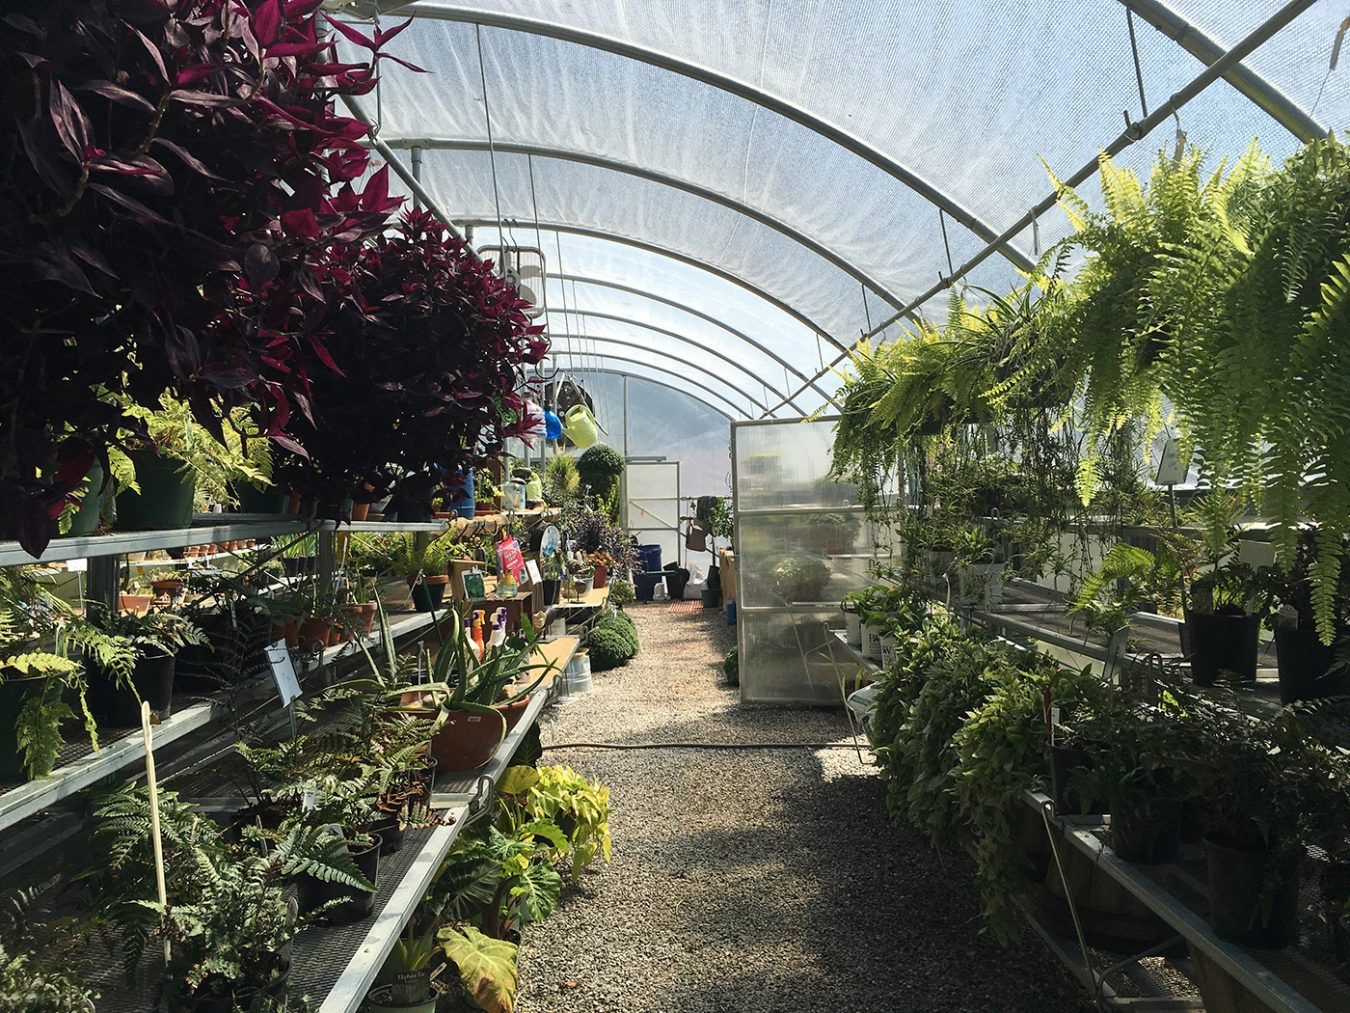 Explore the nursery's walking paths and greenhouses to become acquainted with the variety of plants — an array of indoor and outdoor flora offers something for every living space.